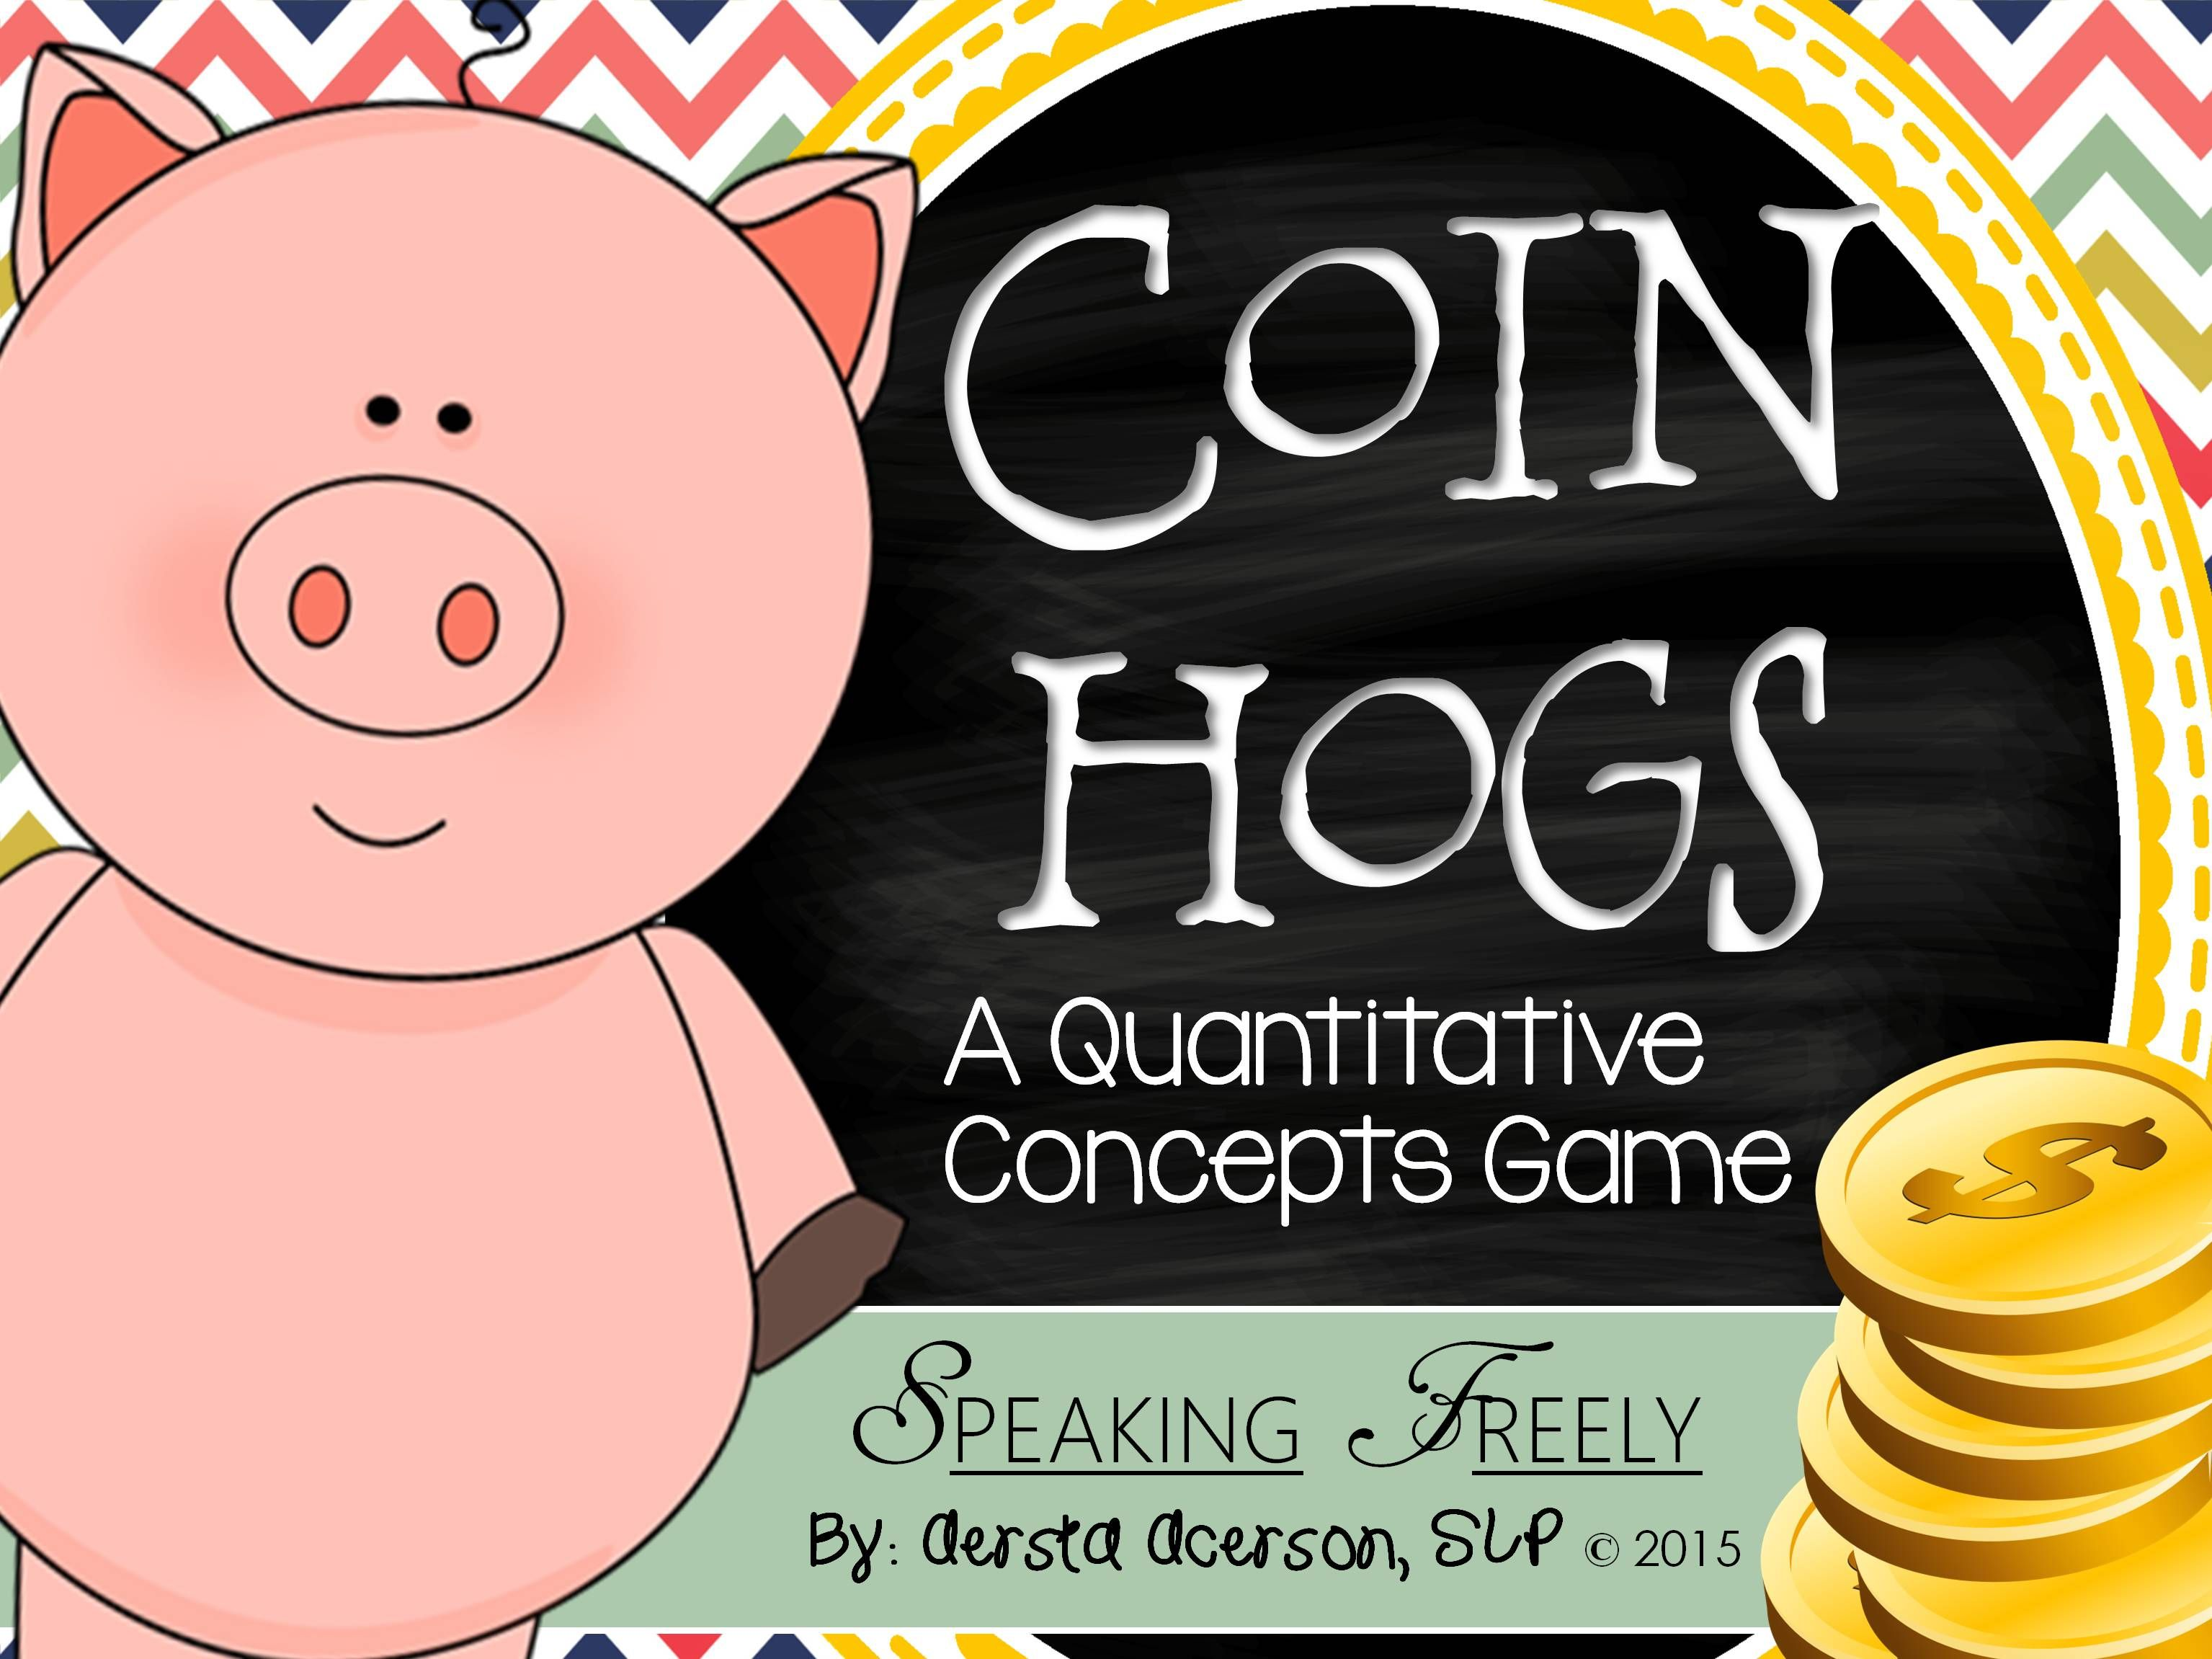 Coin Hogs A Quantitative Concepts Game For Speech Therapy